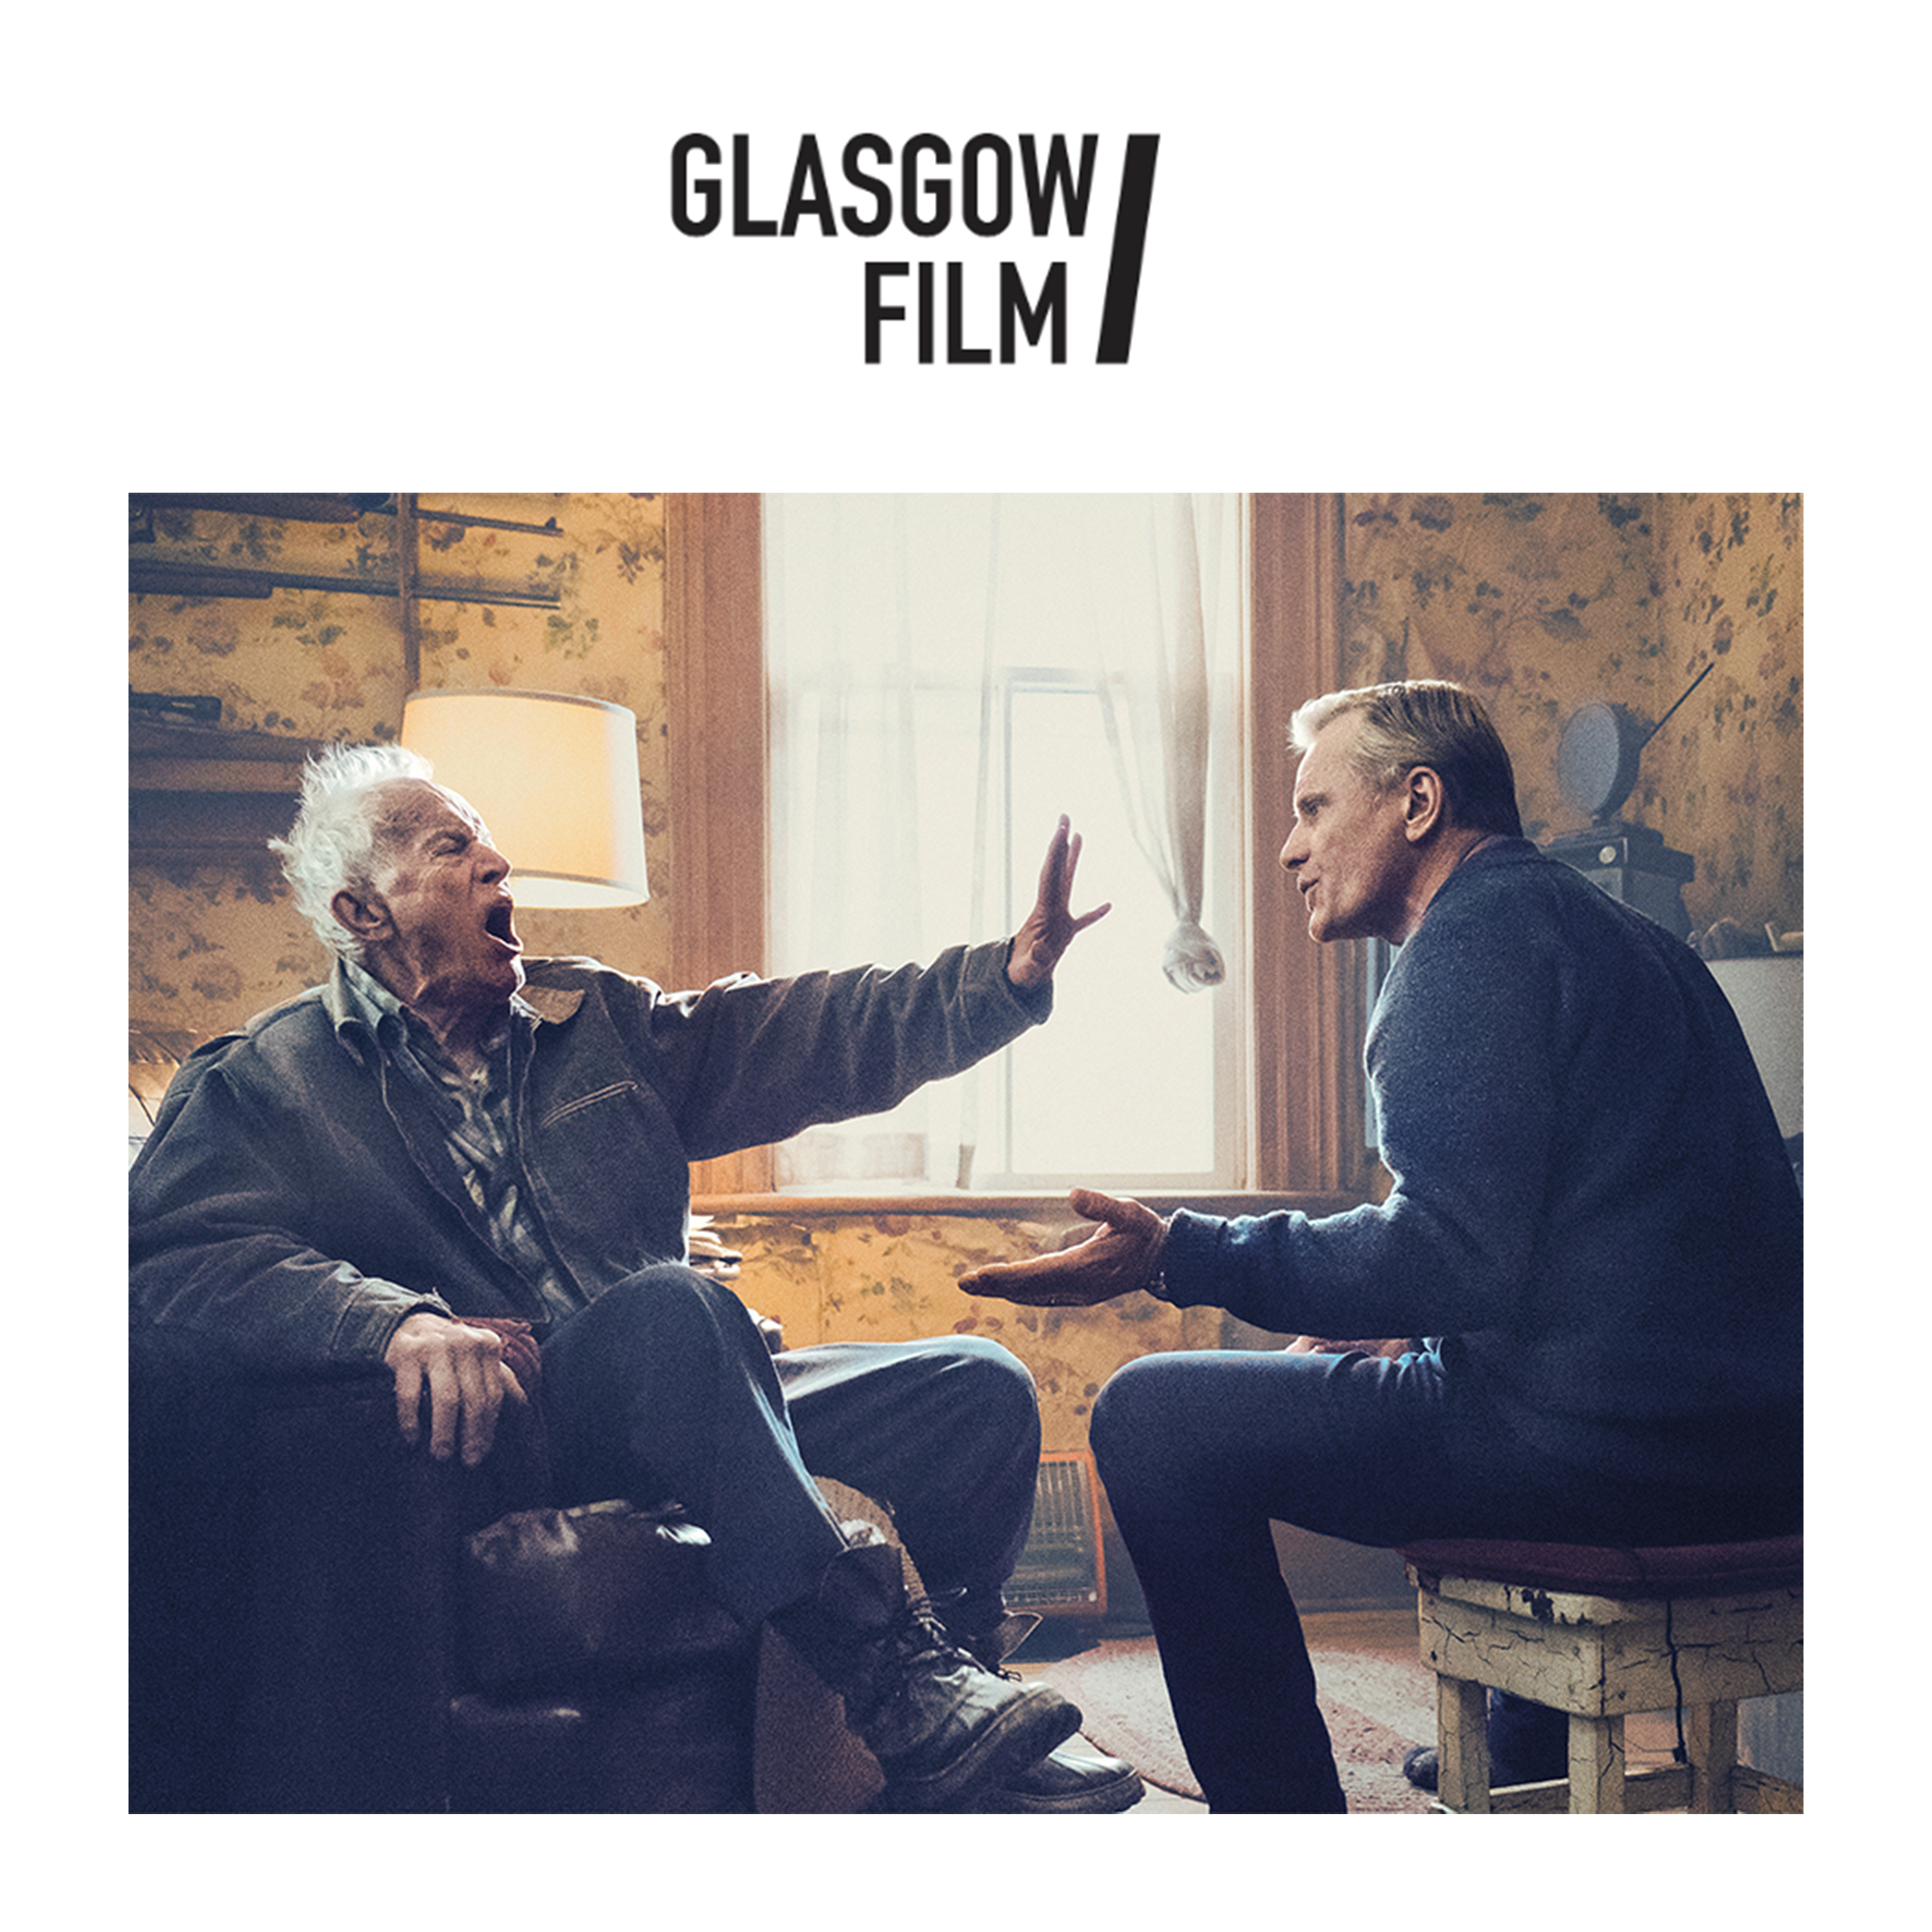 Falling at Glasgow Film Theatre